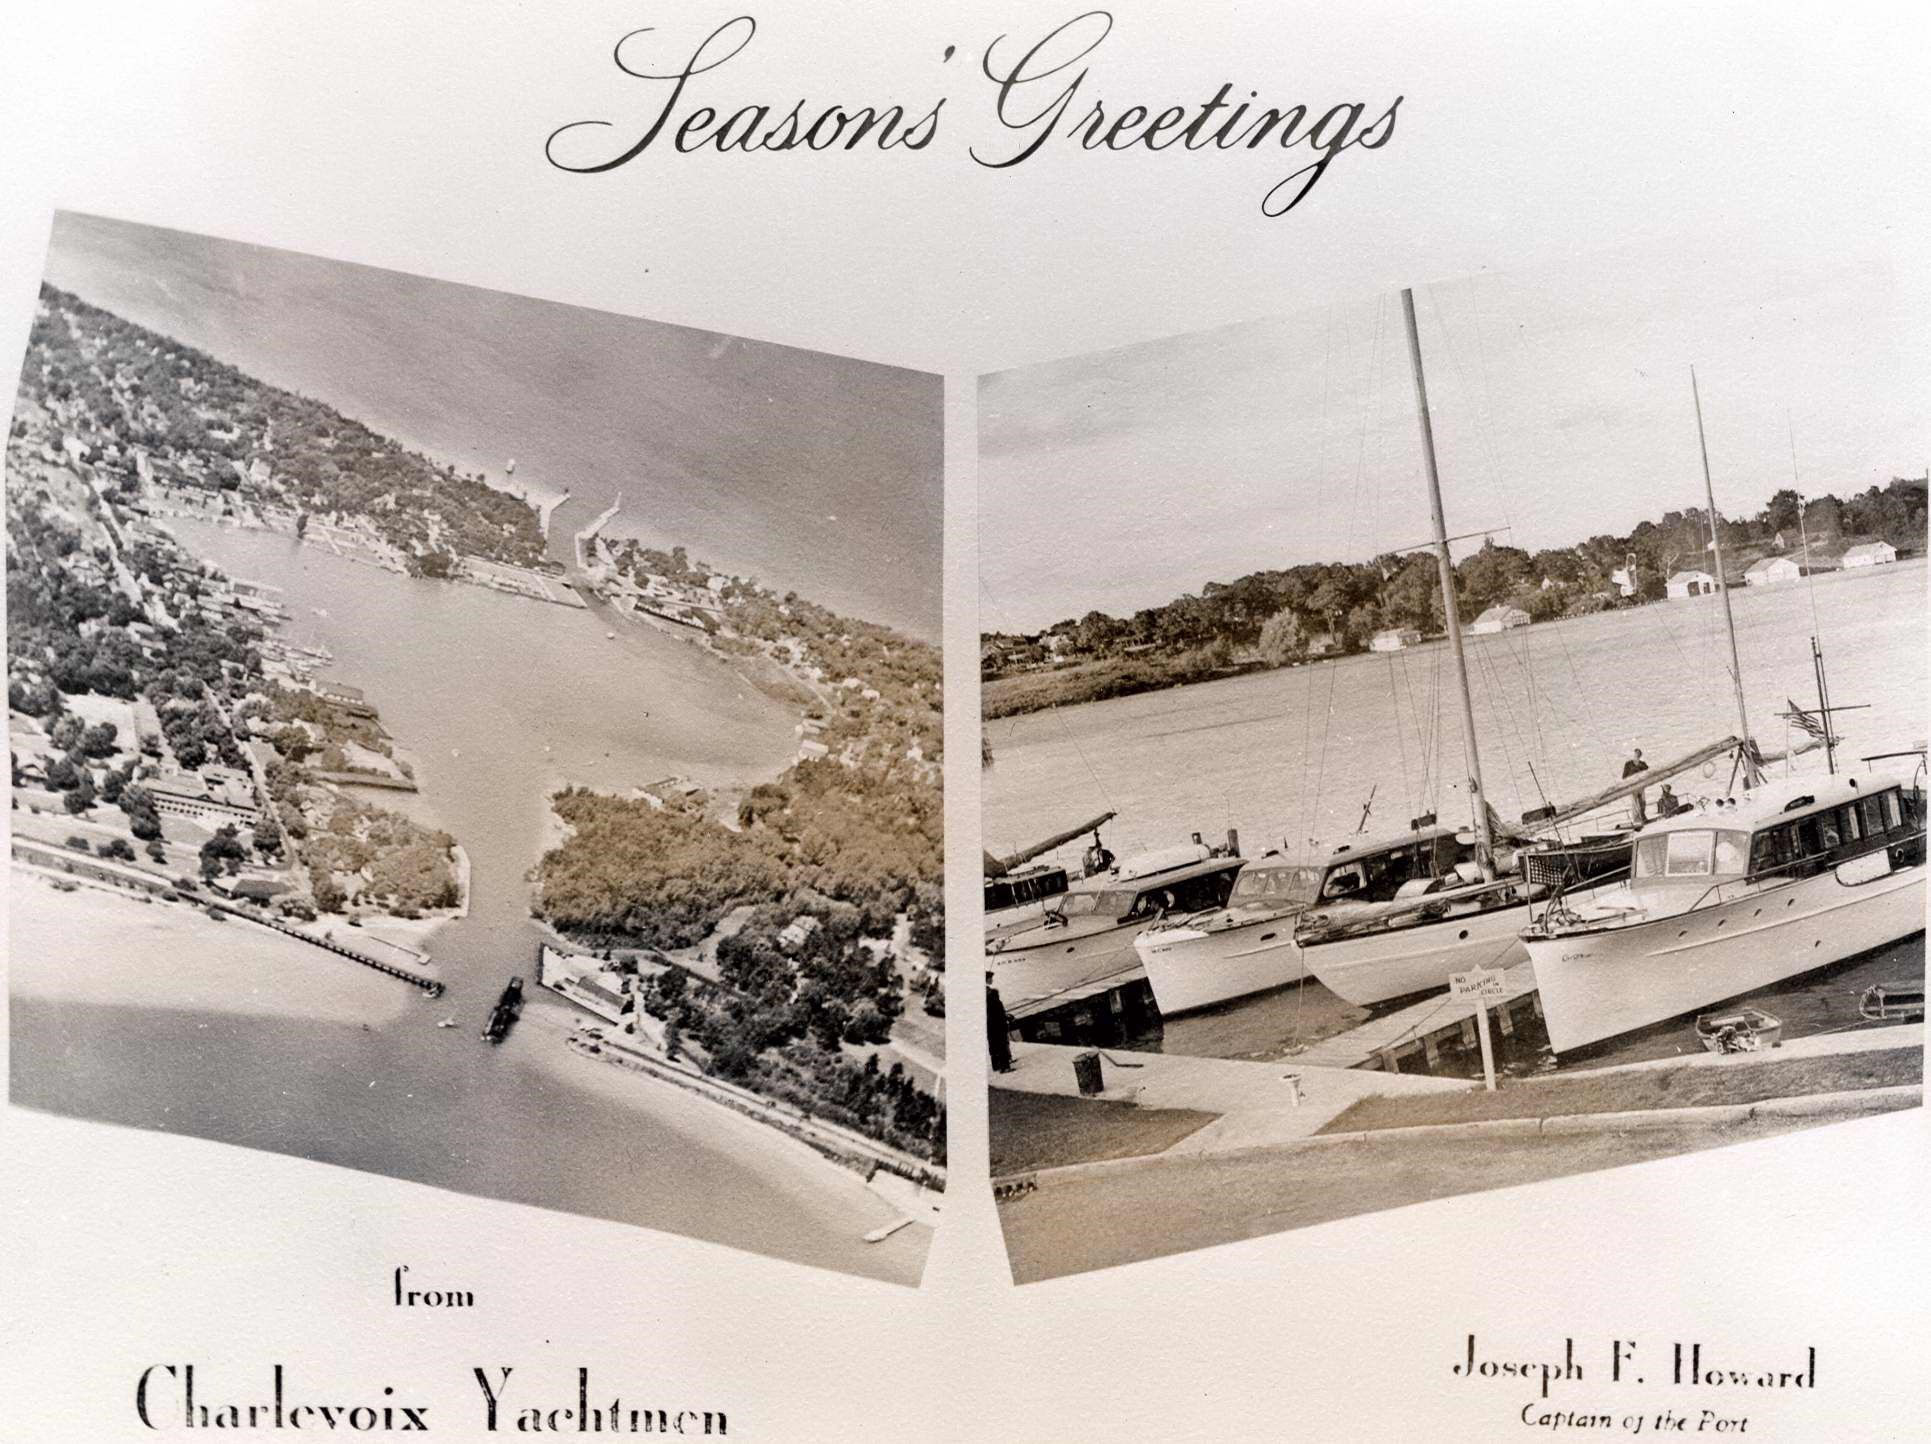 a73ee86bf0d7 The Charlevoix Historical Society has a collection of commemorative holiday  cards. They are sharing several of their favorite cards with us!